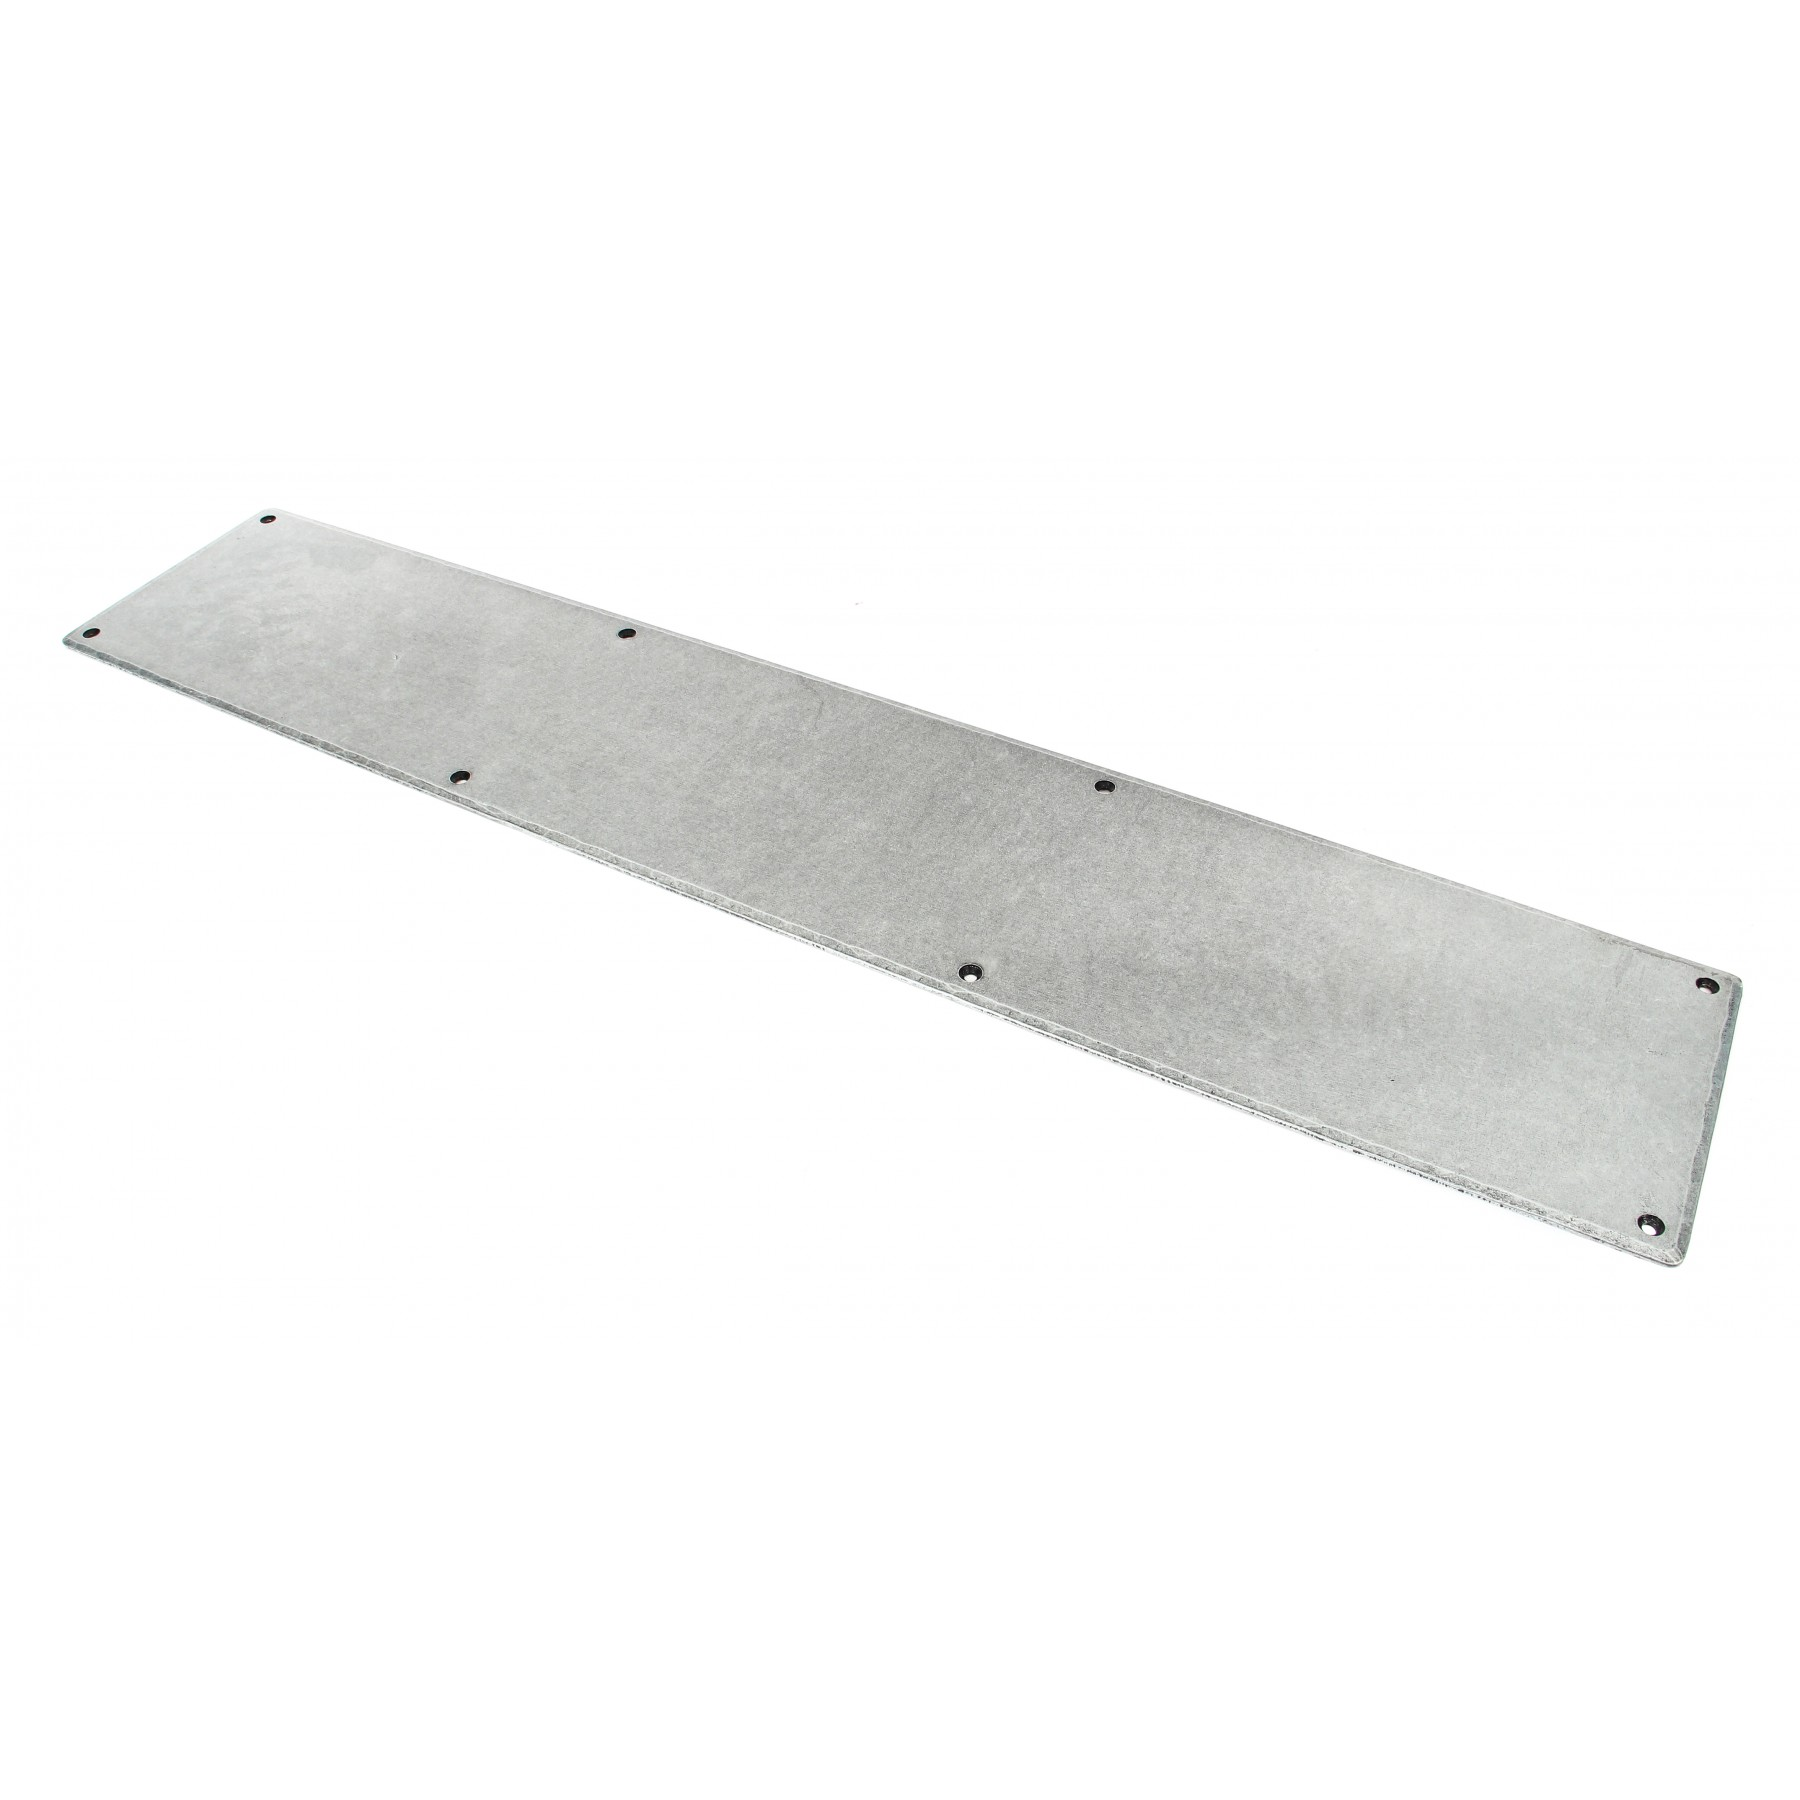 Small Pewter Door Kick Plate: Top Quality Designs & Finishes - At